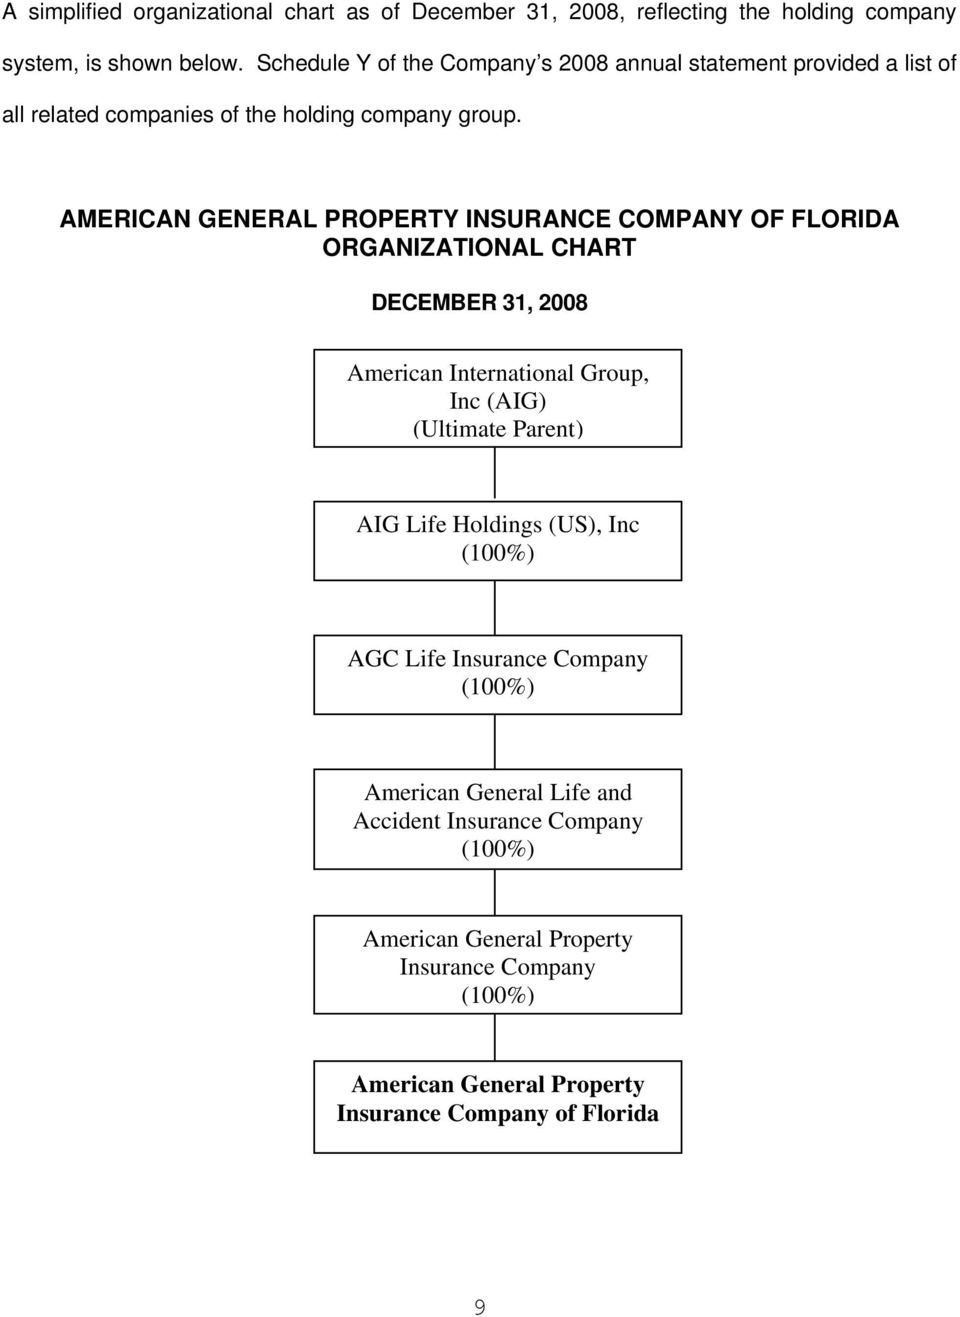 AMERICAN GENERAL PROPERTY INSURANCE COMPANY OF FLORIDA ORGANIZATIONAL CHART DECEMBER 31, 2008 American International Group, Inc (AIG) (Ultimate Parent) AIG